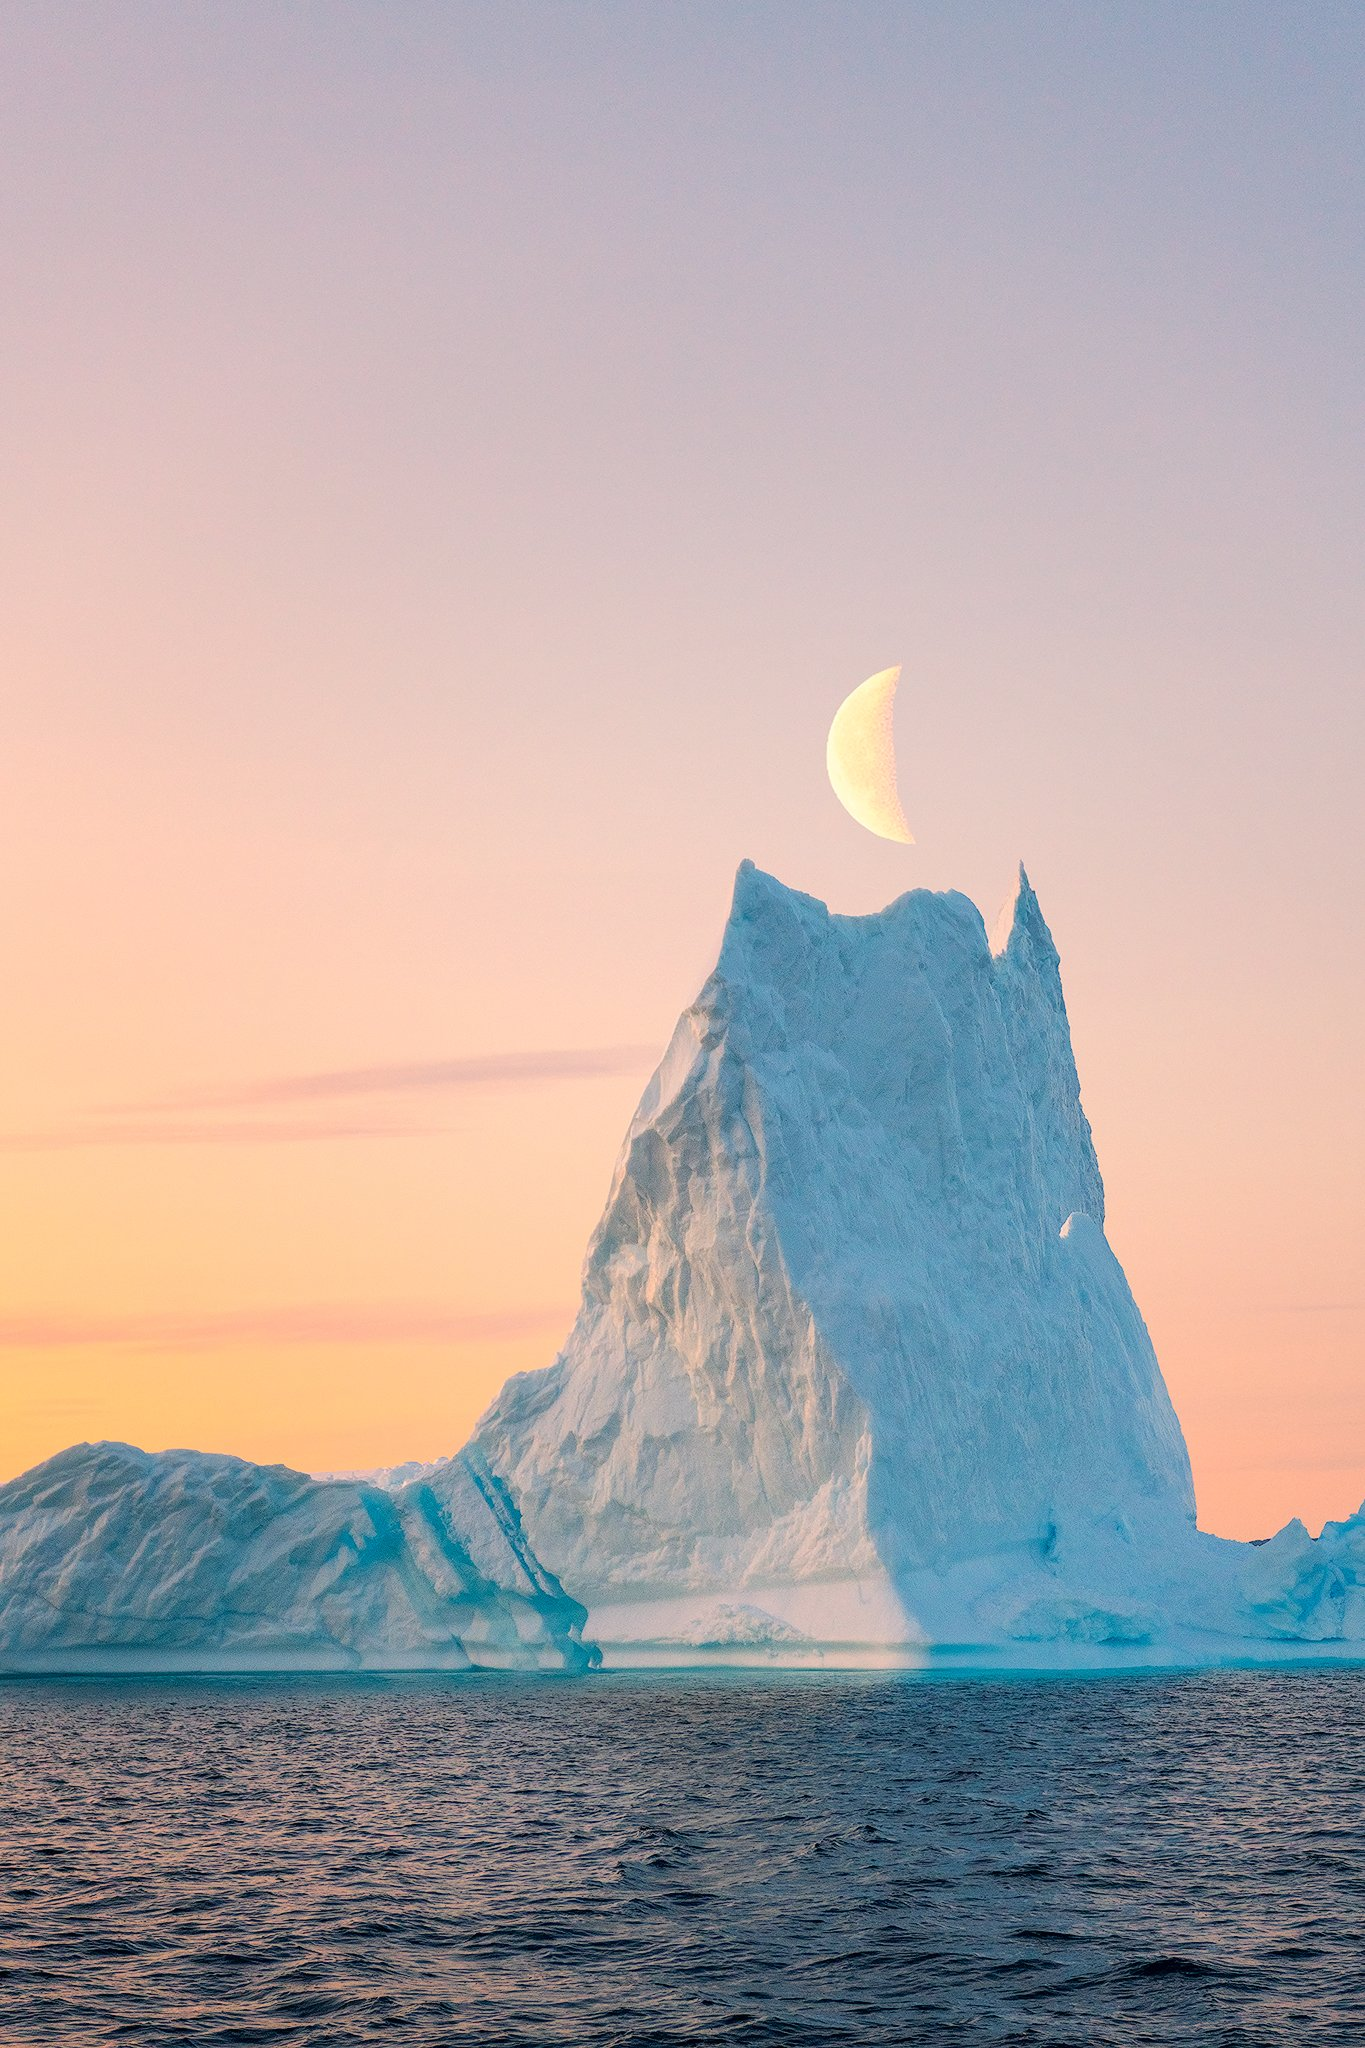 iceberg, sailing, greenland, moon, evening, sea, Chaturapitamorn Natnattcha